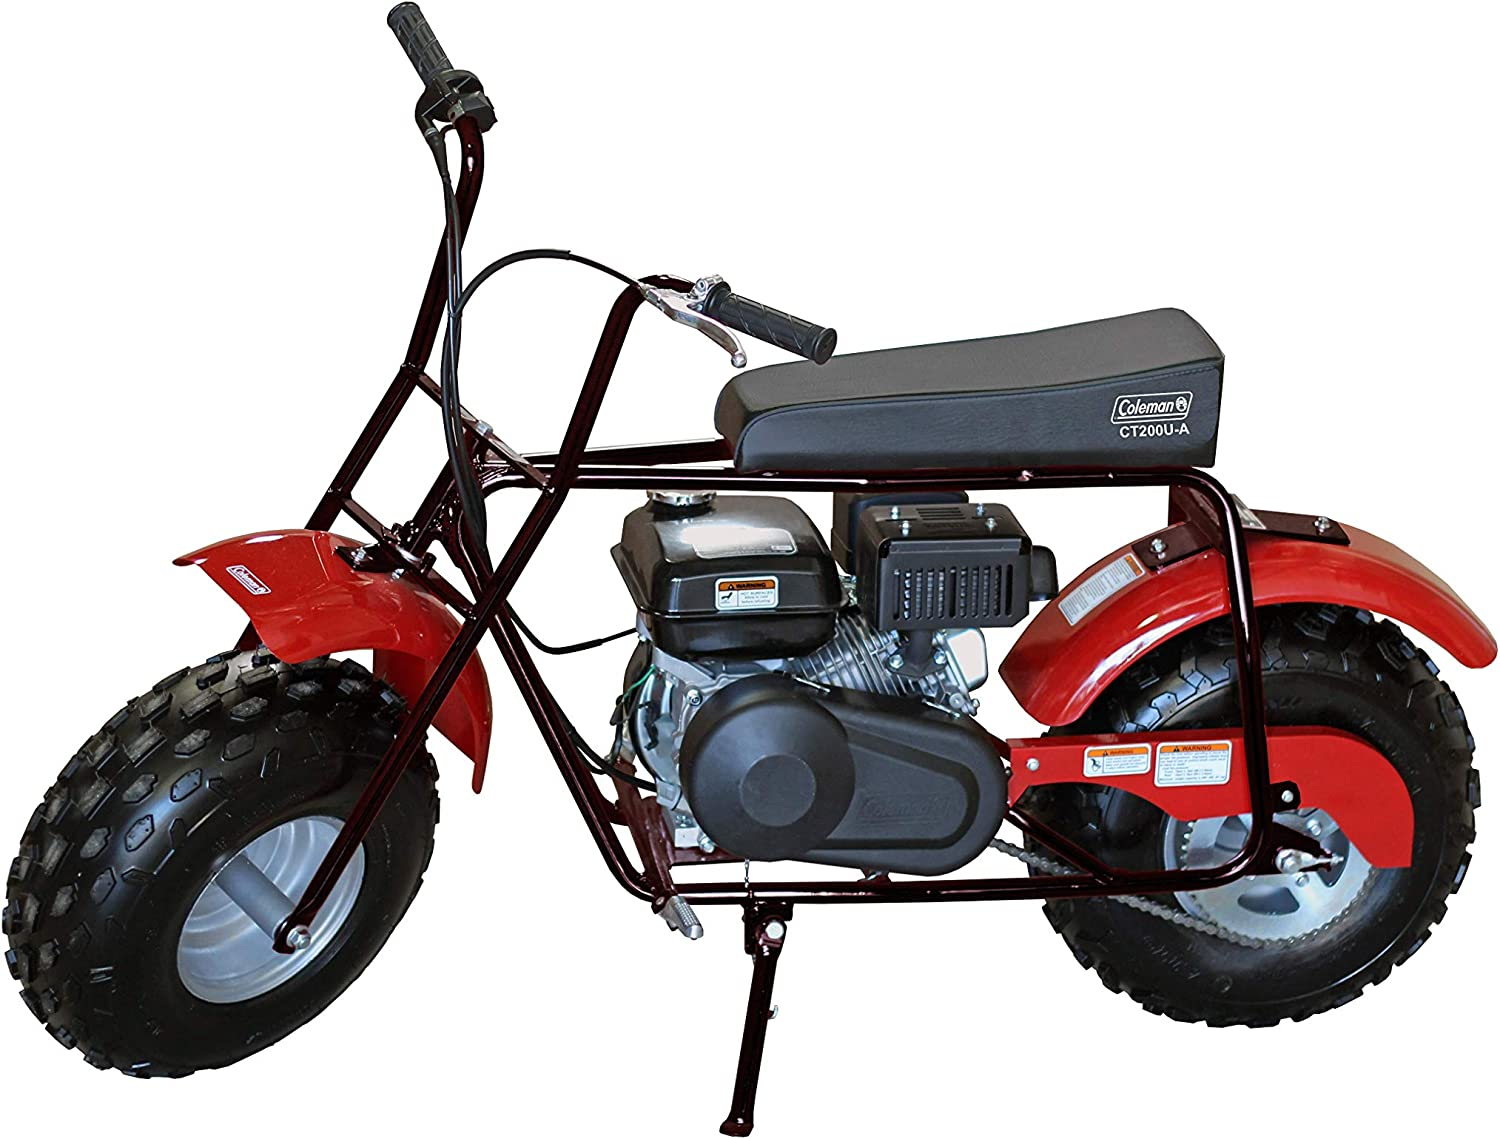 Coleman Powersports Mini Bike Trail Scooter for Adults & Kids 13+, Gas Powered, 196cc/6.5HP